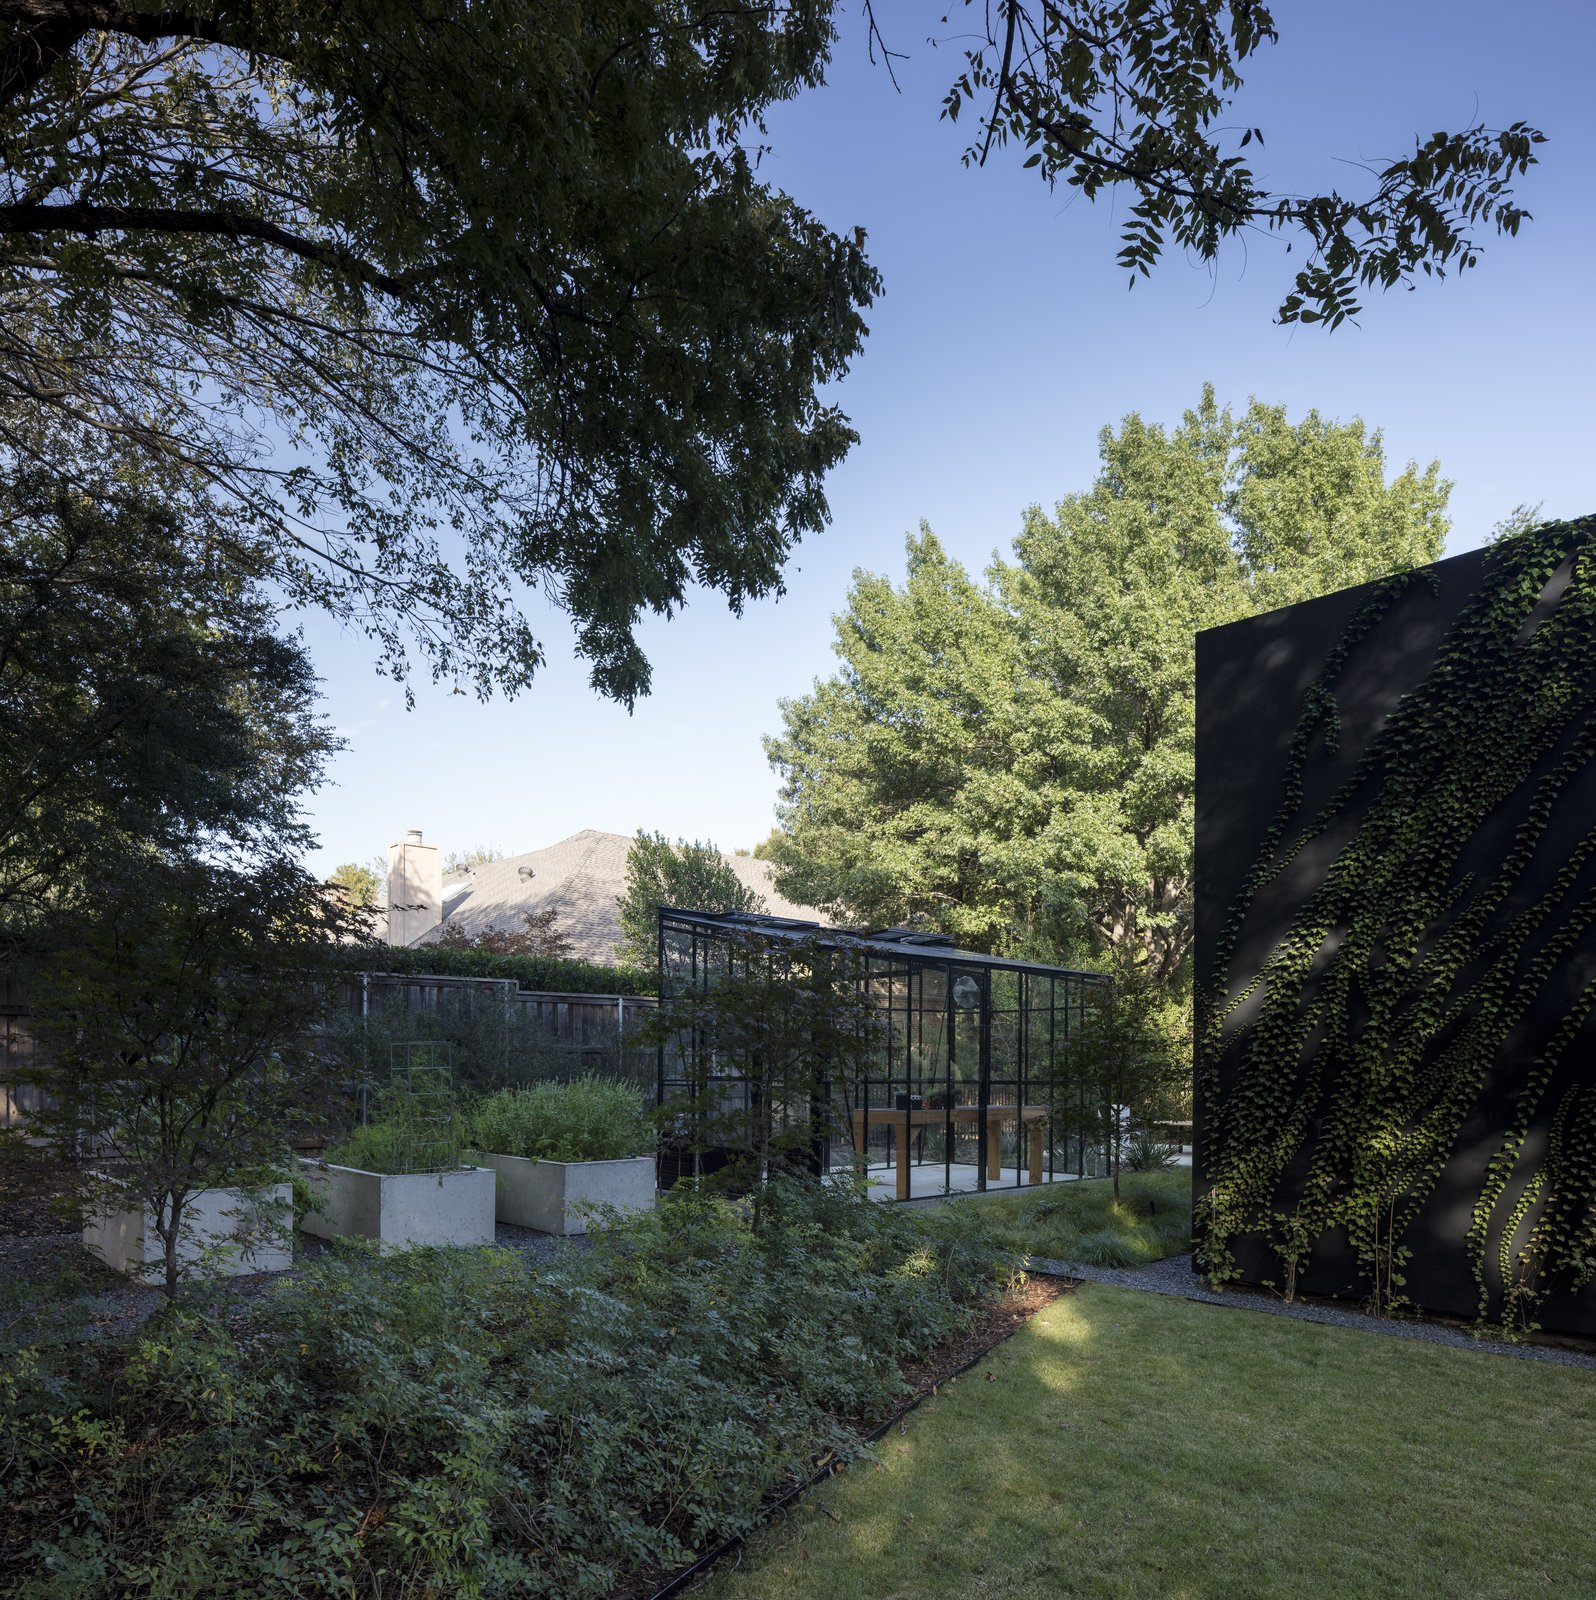 Outdoor, Flowers, Landscape, Shrubs, Grass, Vegetables, Garden, Gardens, Hardscapes, Decomposed Granite, Concrete, Small, and Trees Garden and greenhouse  Best Outdoor Flowers Garden Photos from The Winnwood Residence